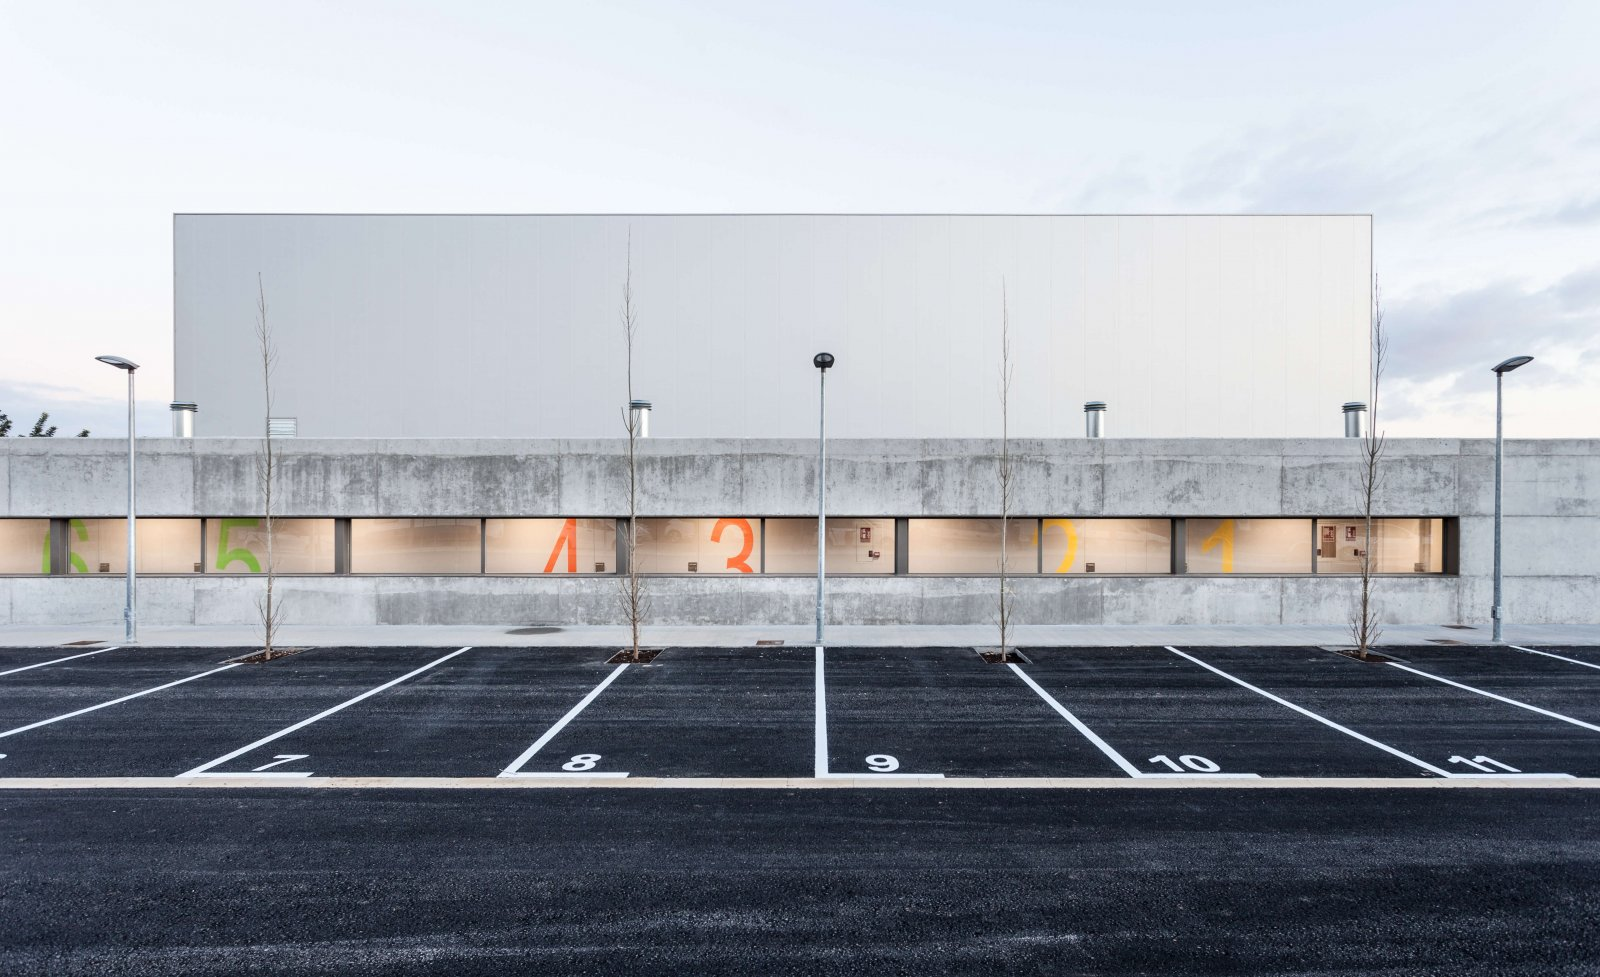 Another detail view of the parking lot of the son ferragut pavilion